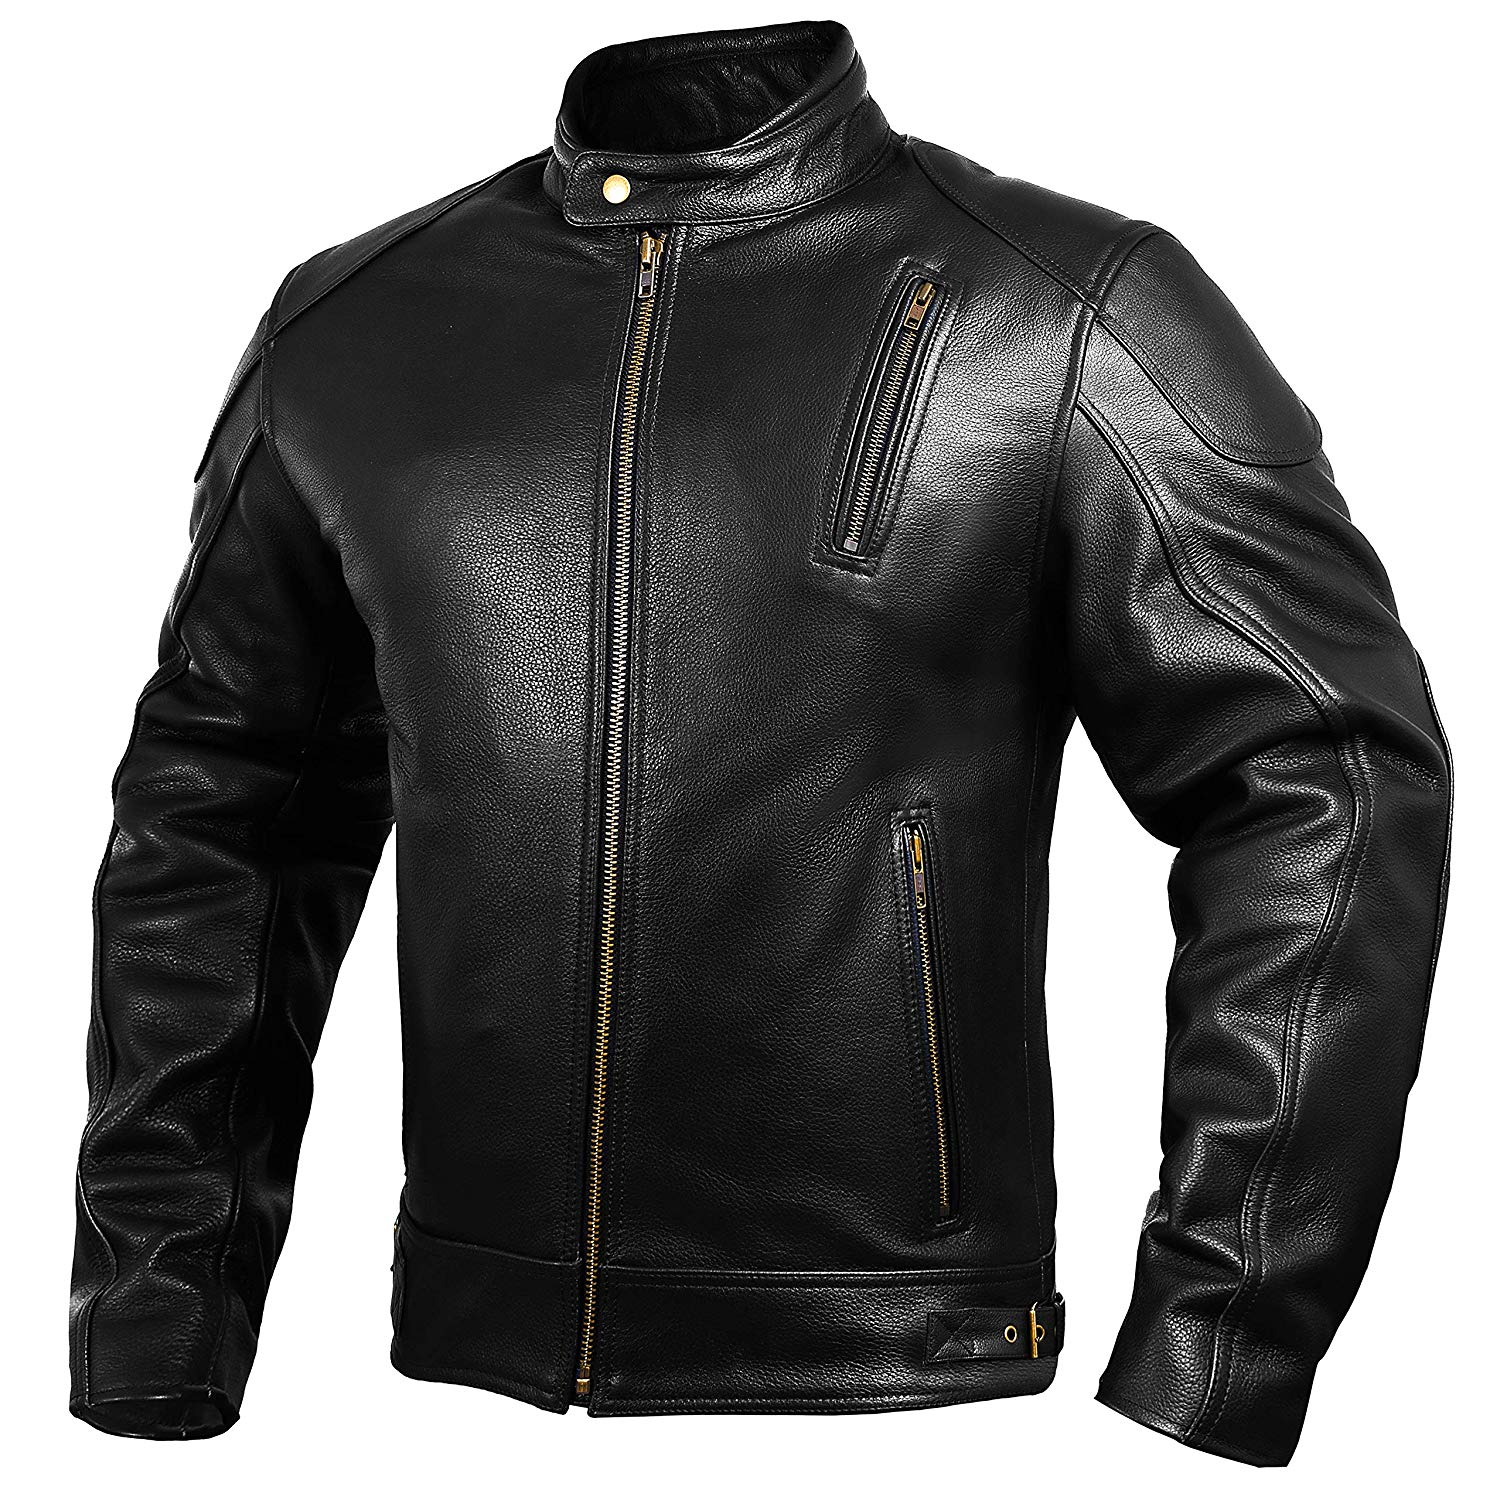 Mens Black Leather Racing